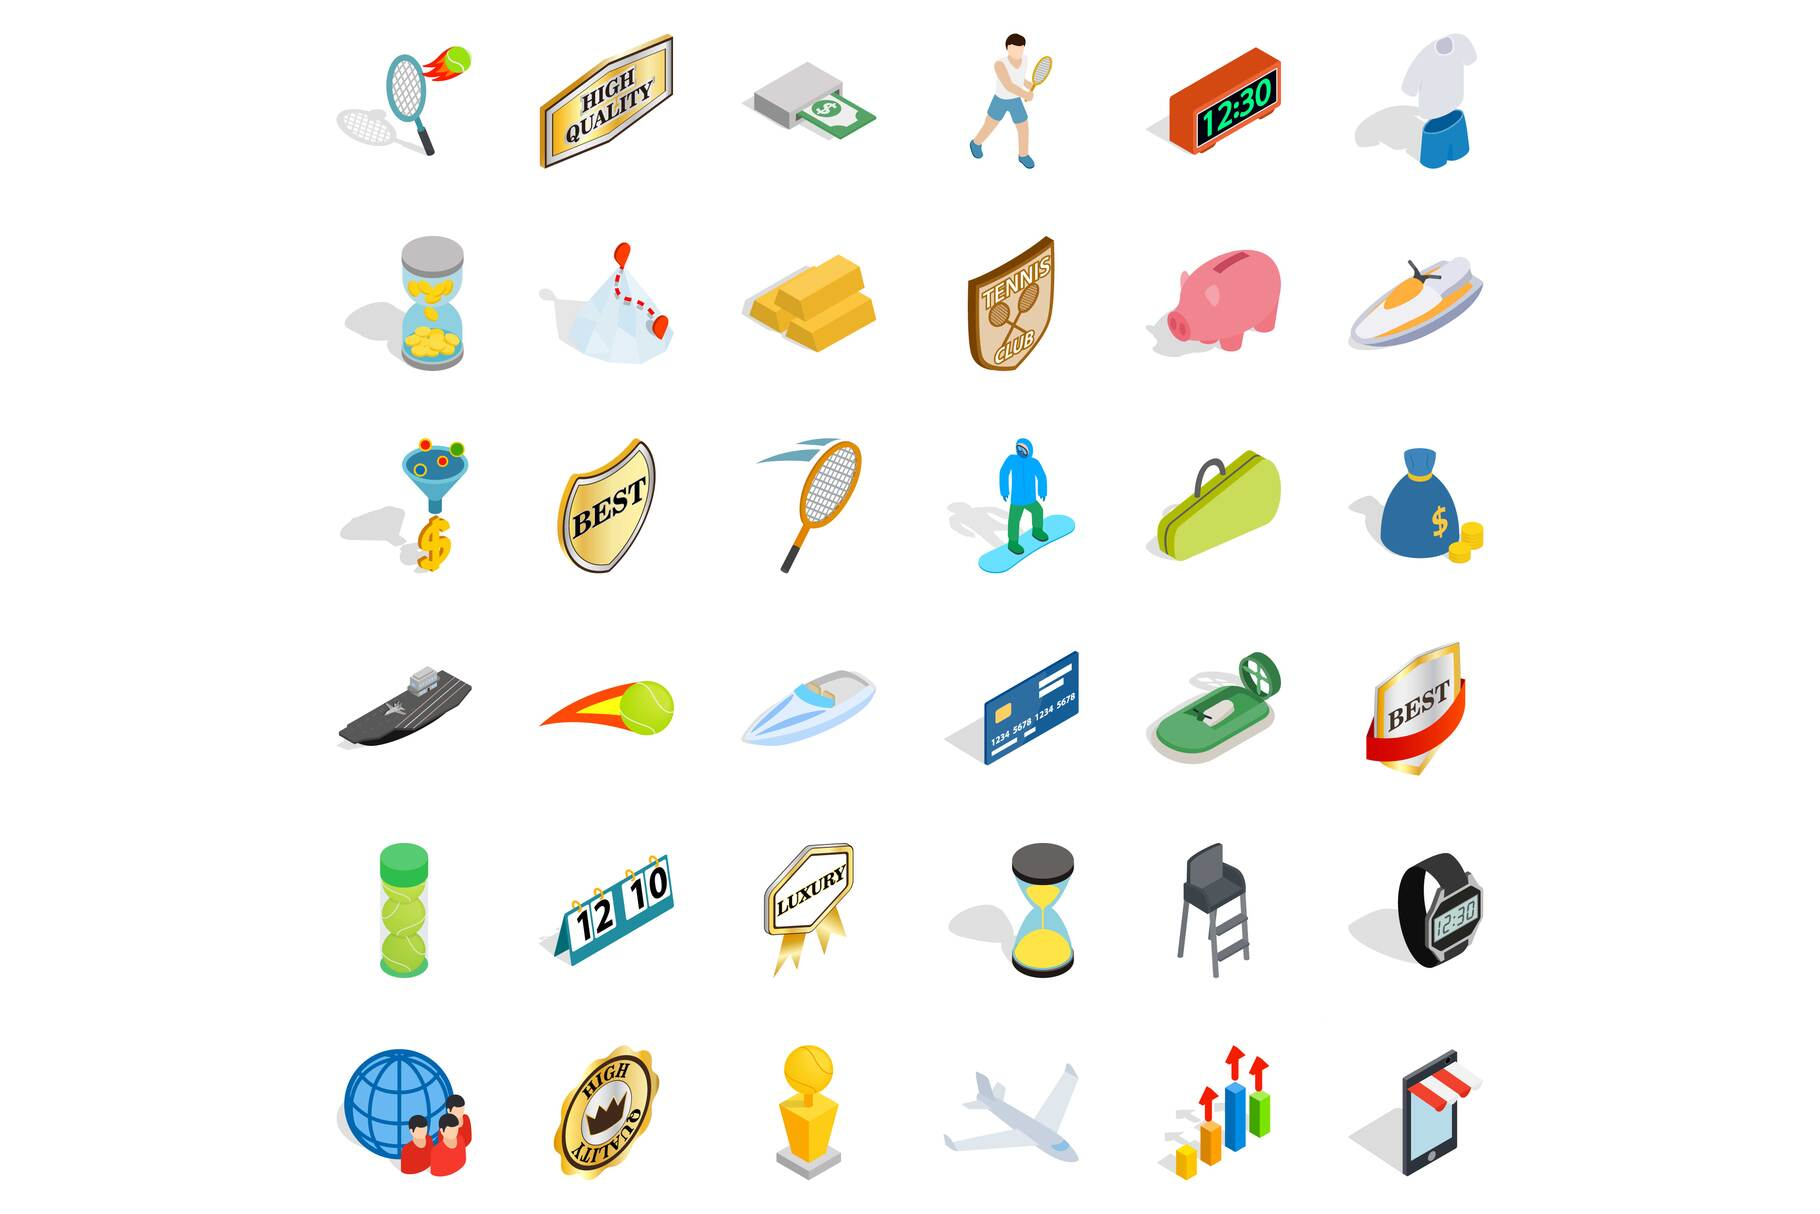 Small victory icons set, isometric style example image 1